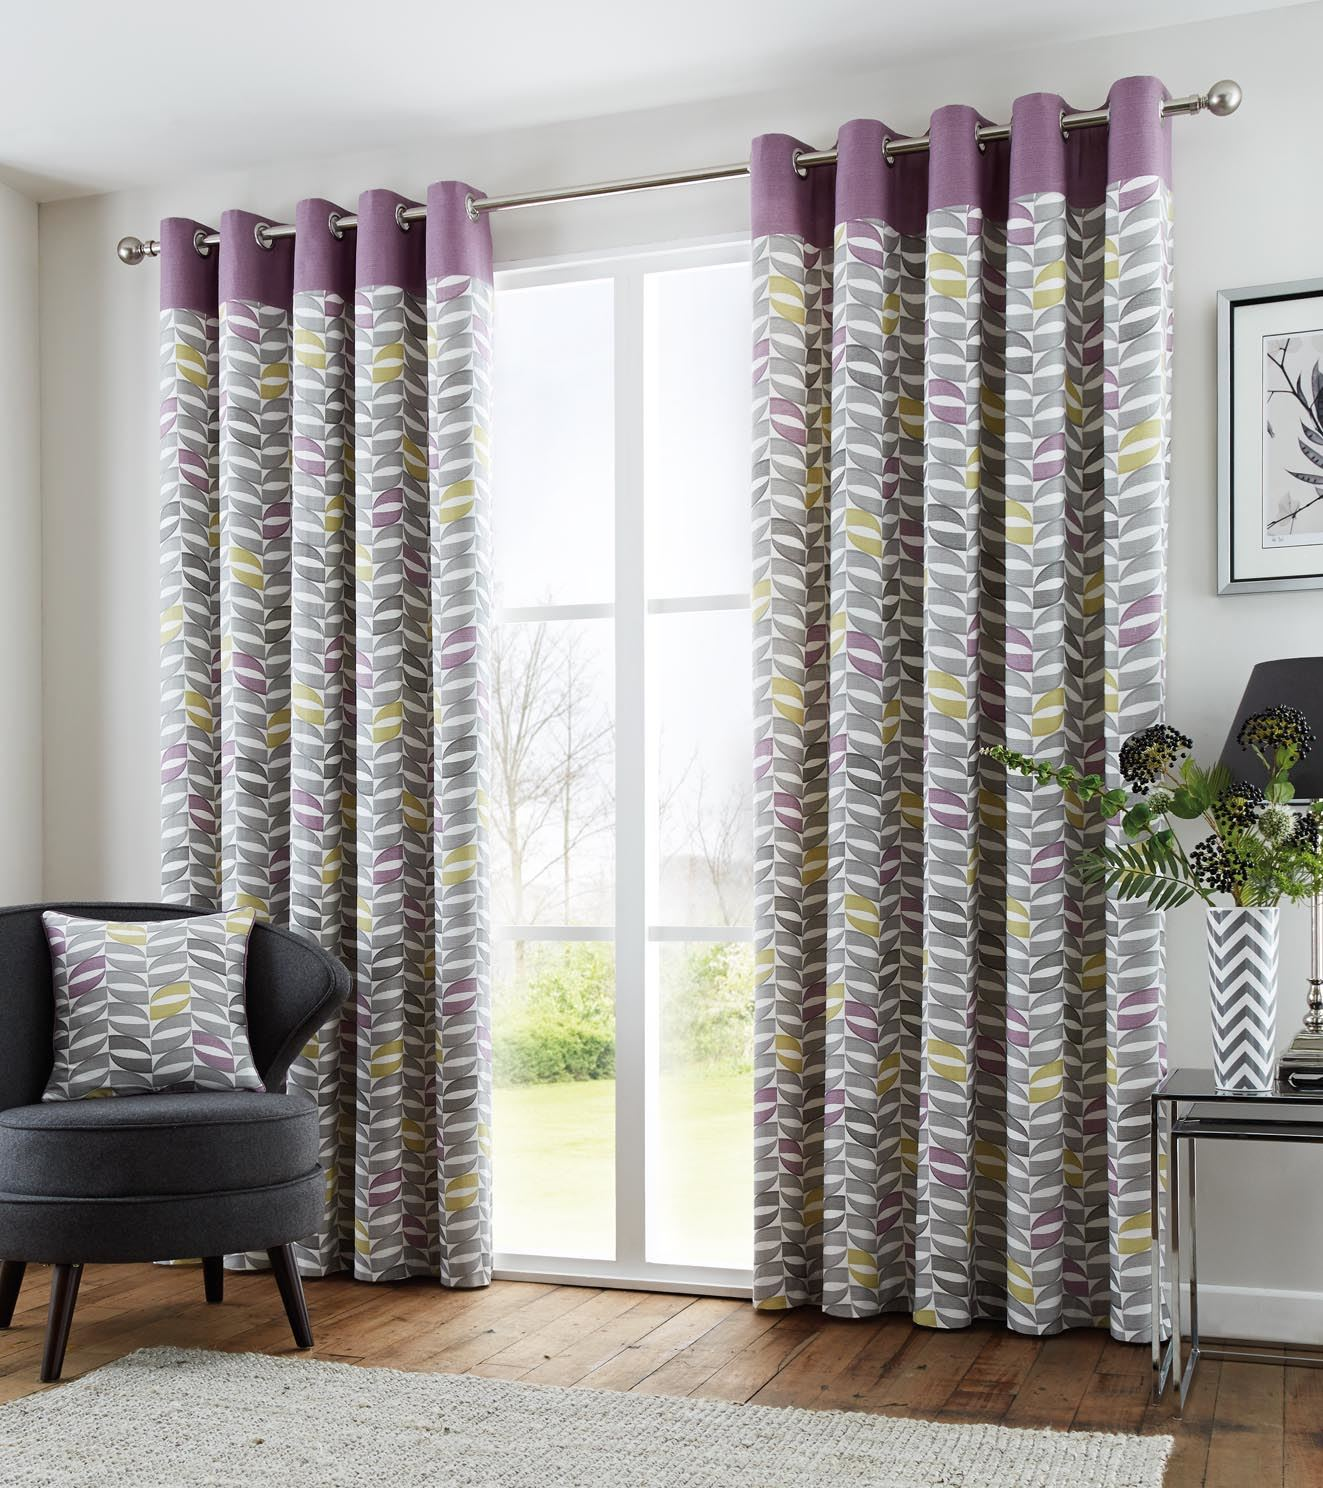 Fully Lined 100 Cotton Purple Green Cream Eyelet Ring Top Curtains 8 Sizes